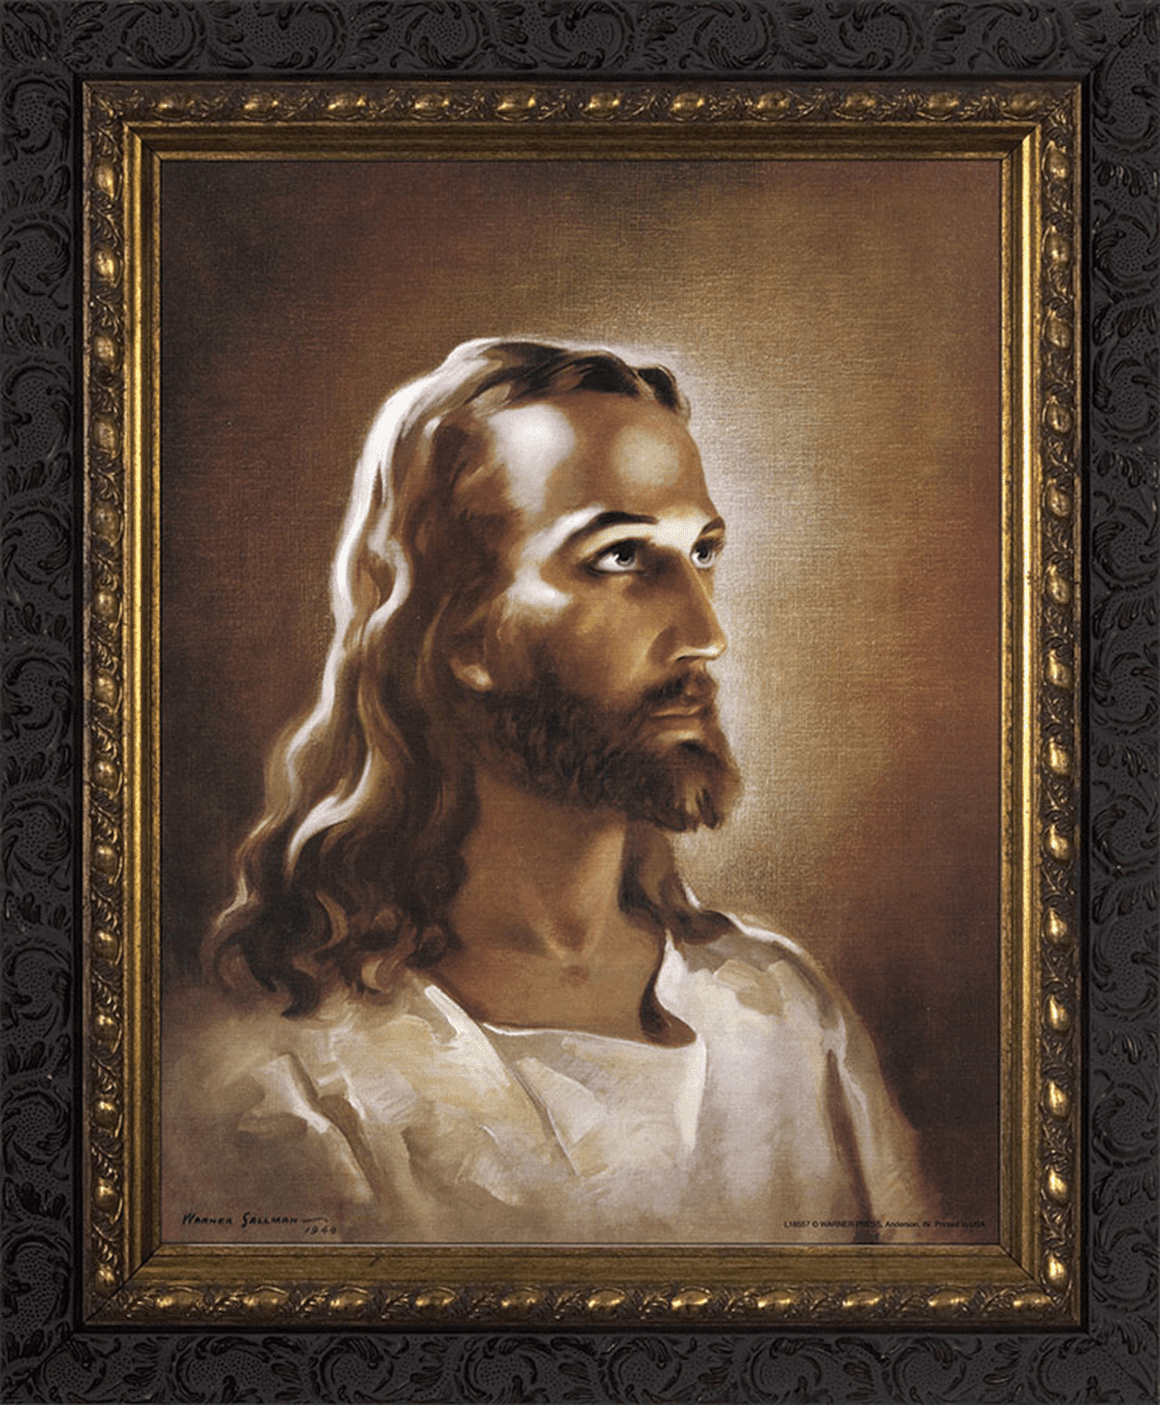 Nelson's Gifts Head of Christ Jesus by Warner Sallman Ornate Dark Framed Wall Art Picture